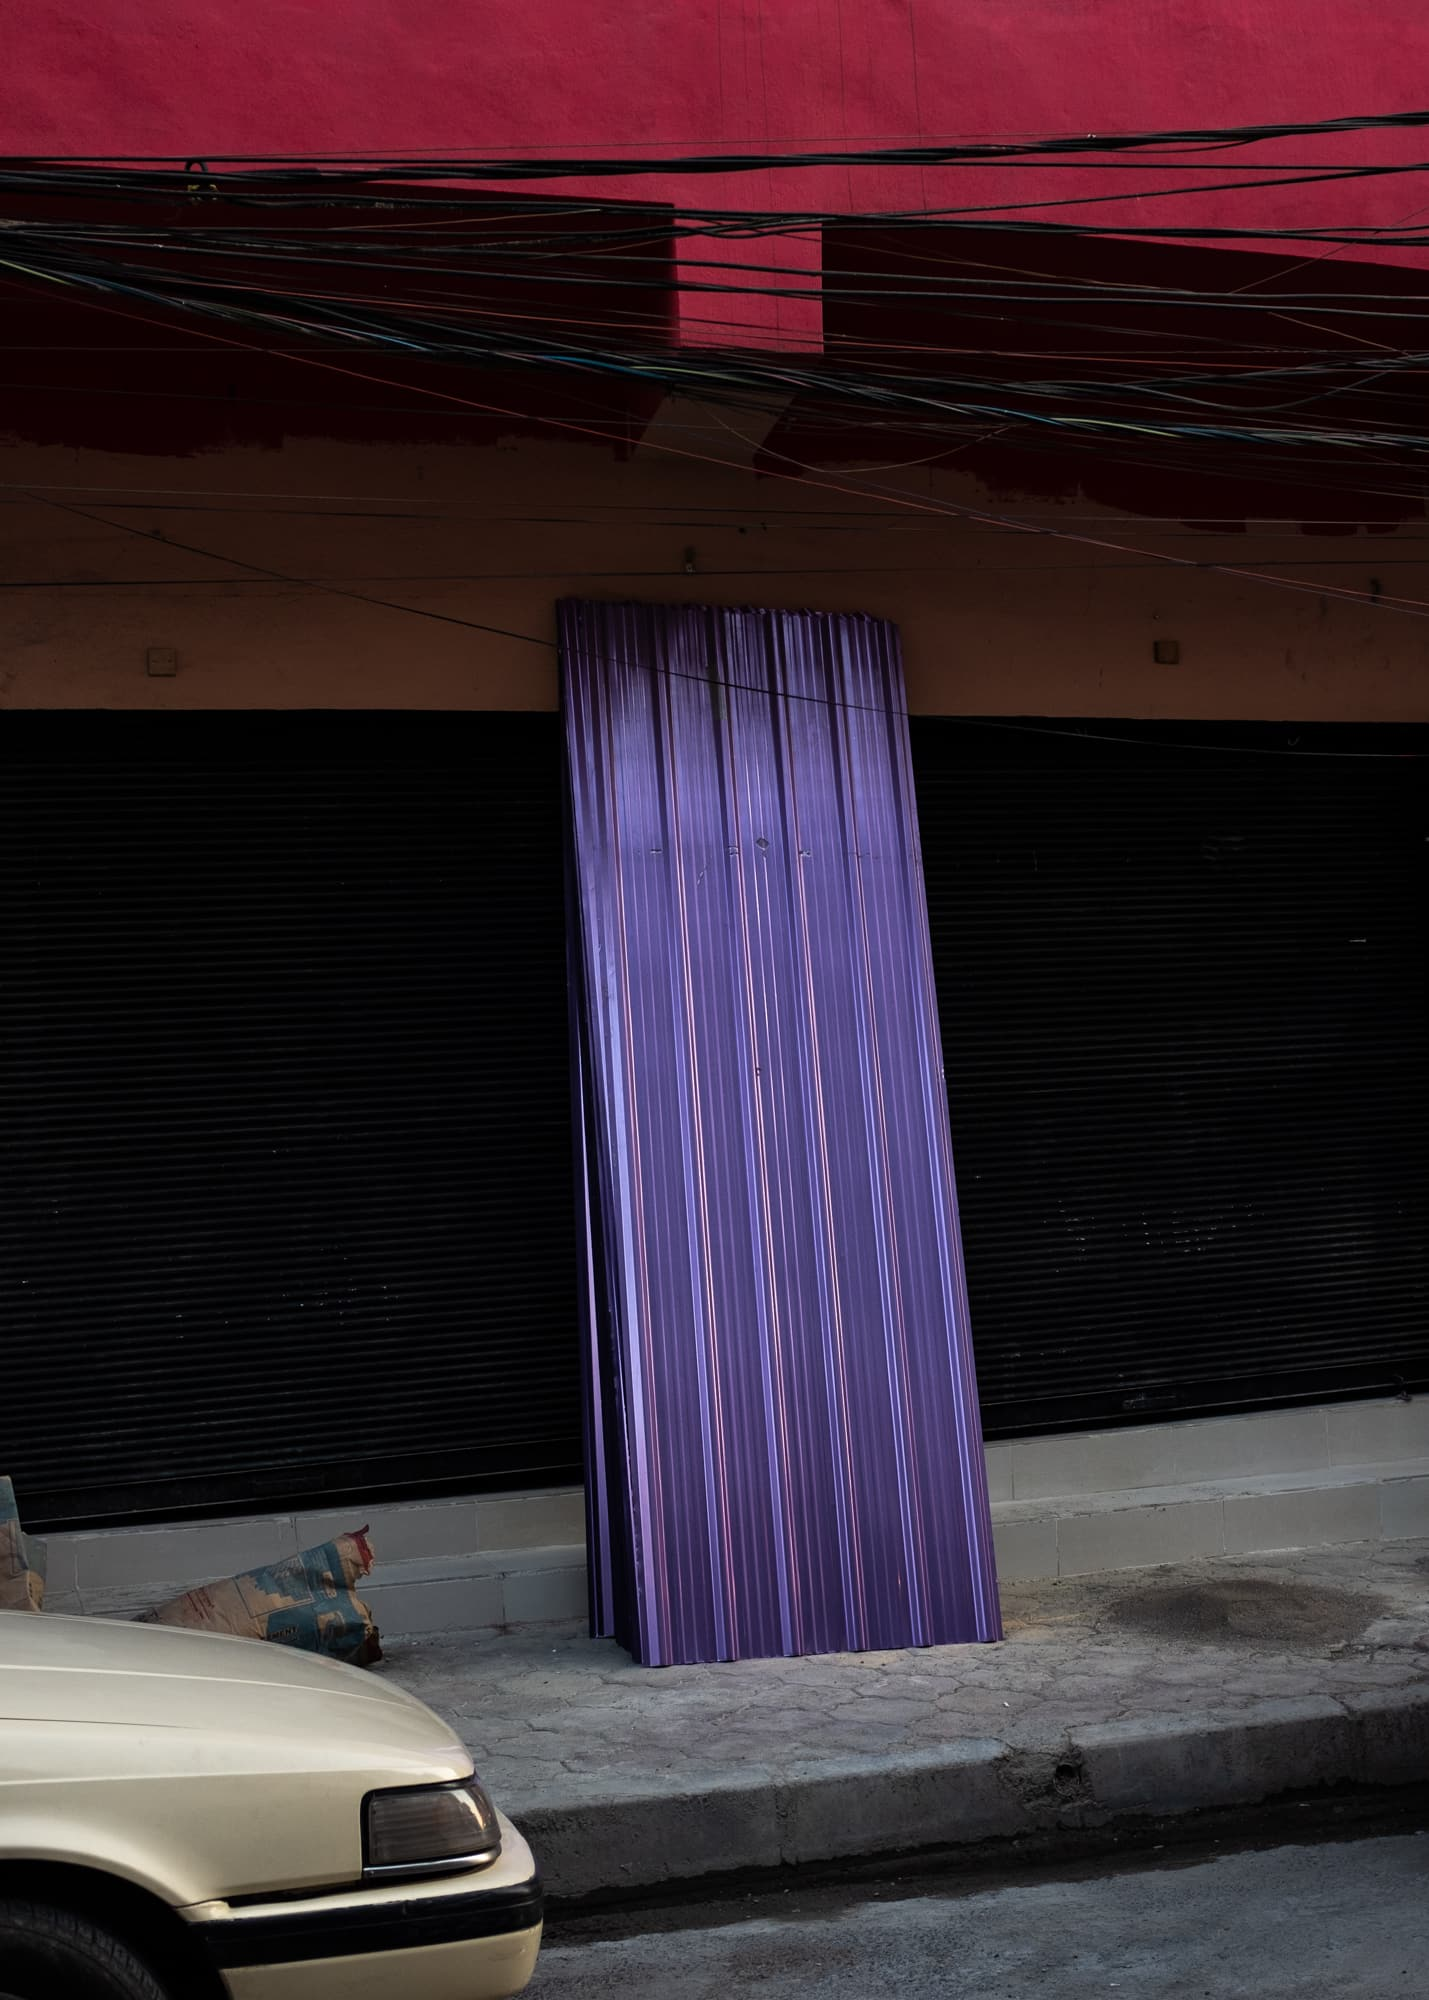 A purple piece of corrugated iron in the streets of Ankawa, the Christian quarter of Erbil, Iraq on September 1st, 2019.